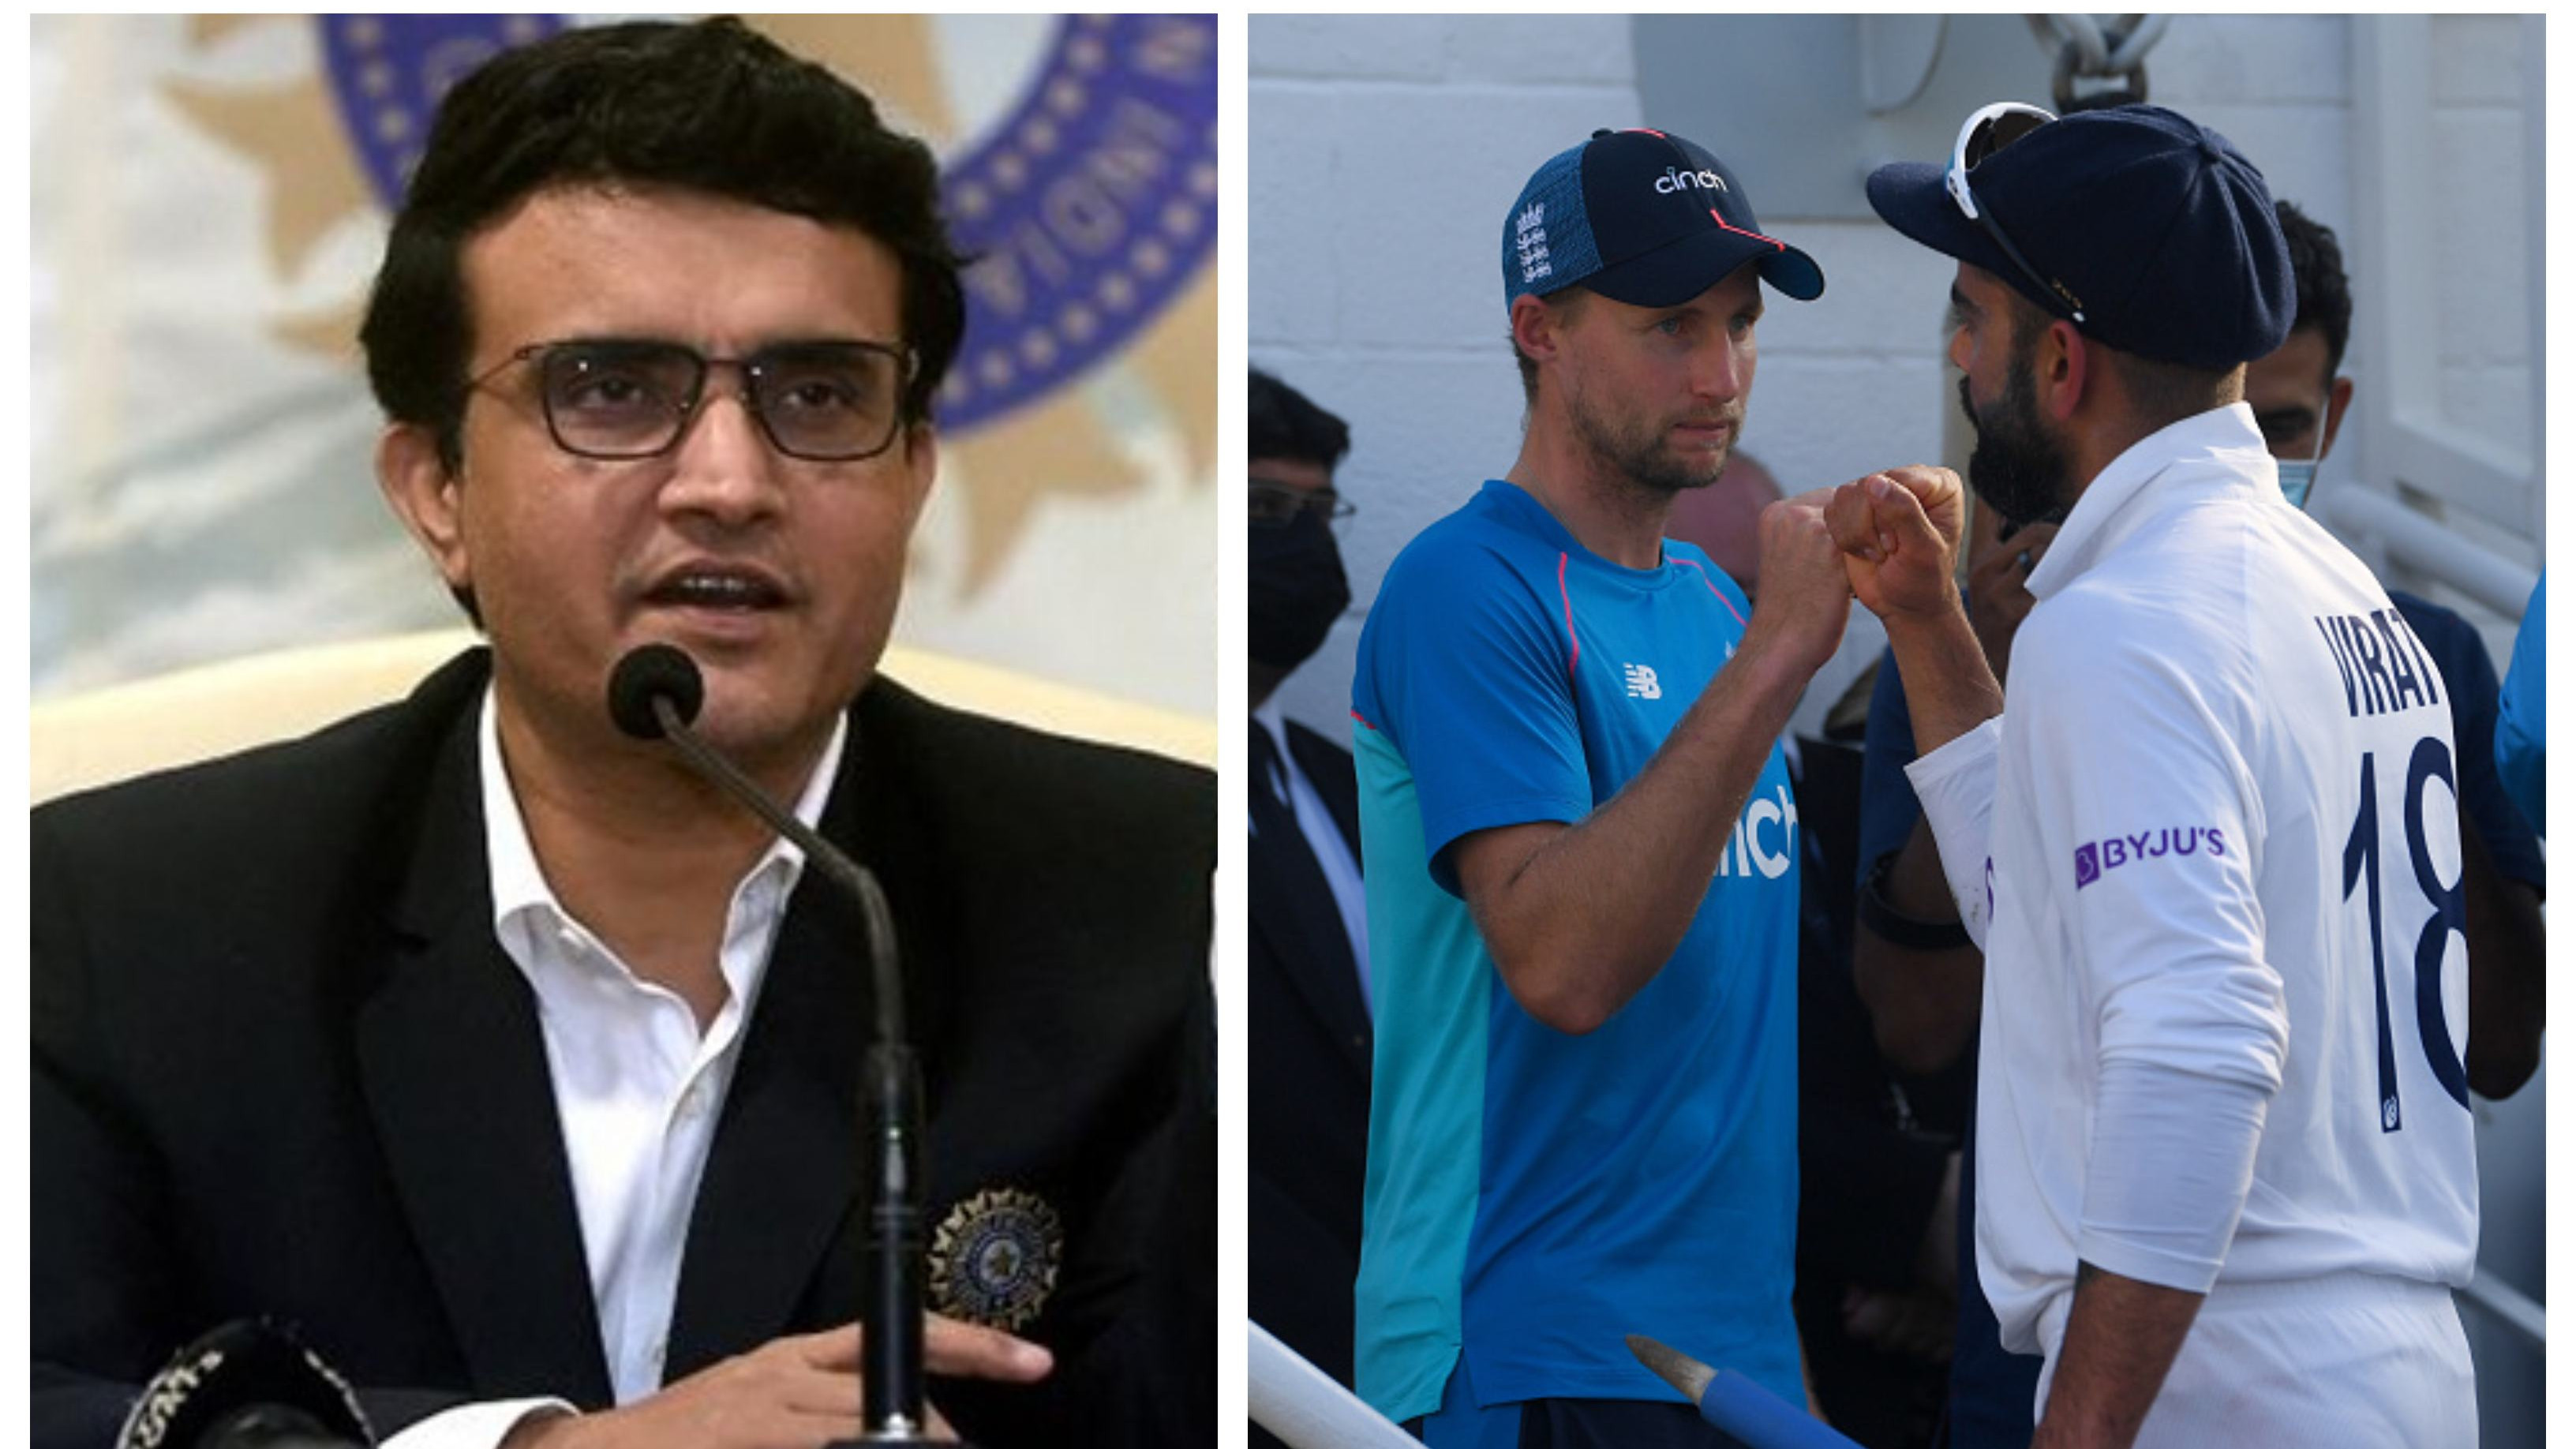 ENG v IND 2021: Sourav Ganguly says rescheduled Test against England won't be considered part of the series